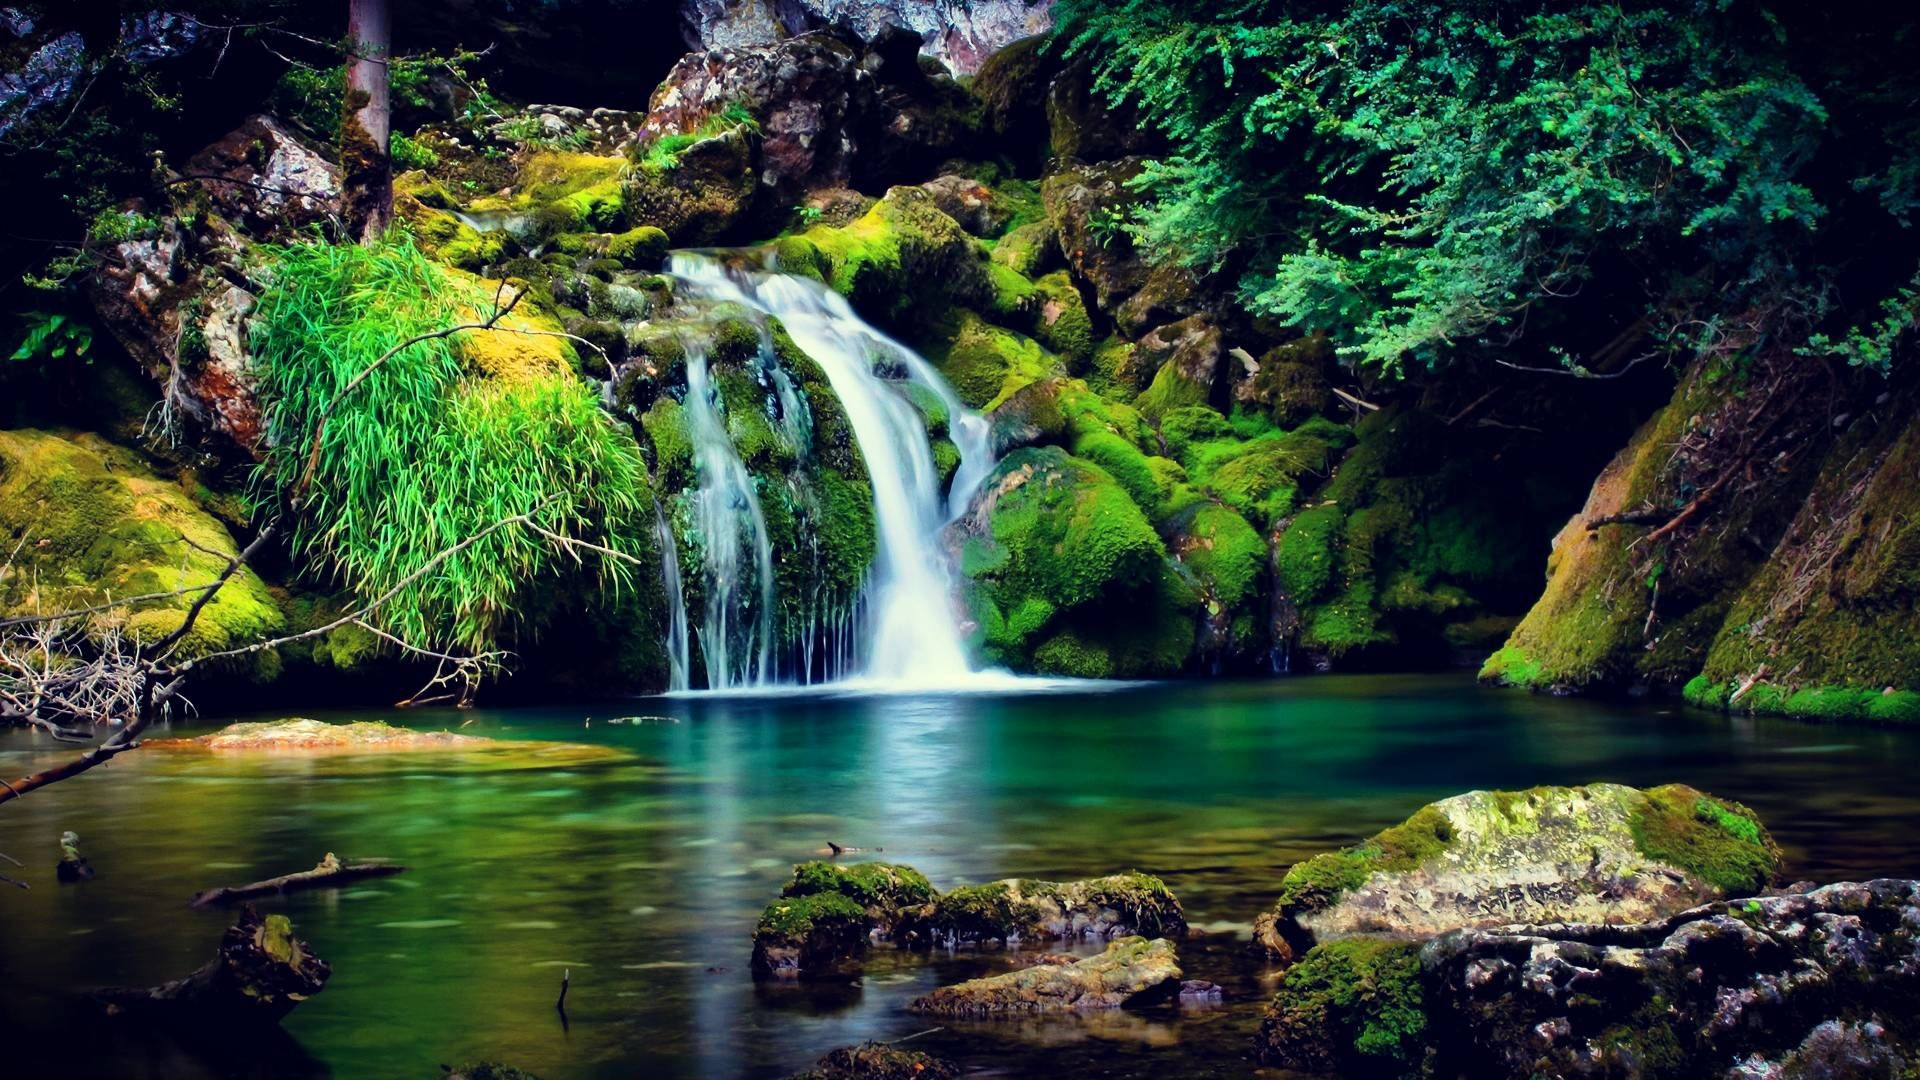 Waterfall Hd Wallpaper Garden Of Eden Cool Hd Wallpapers With